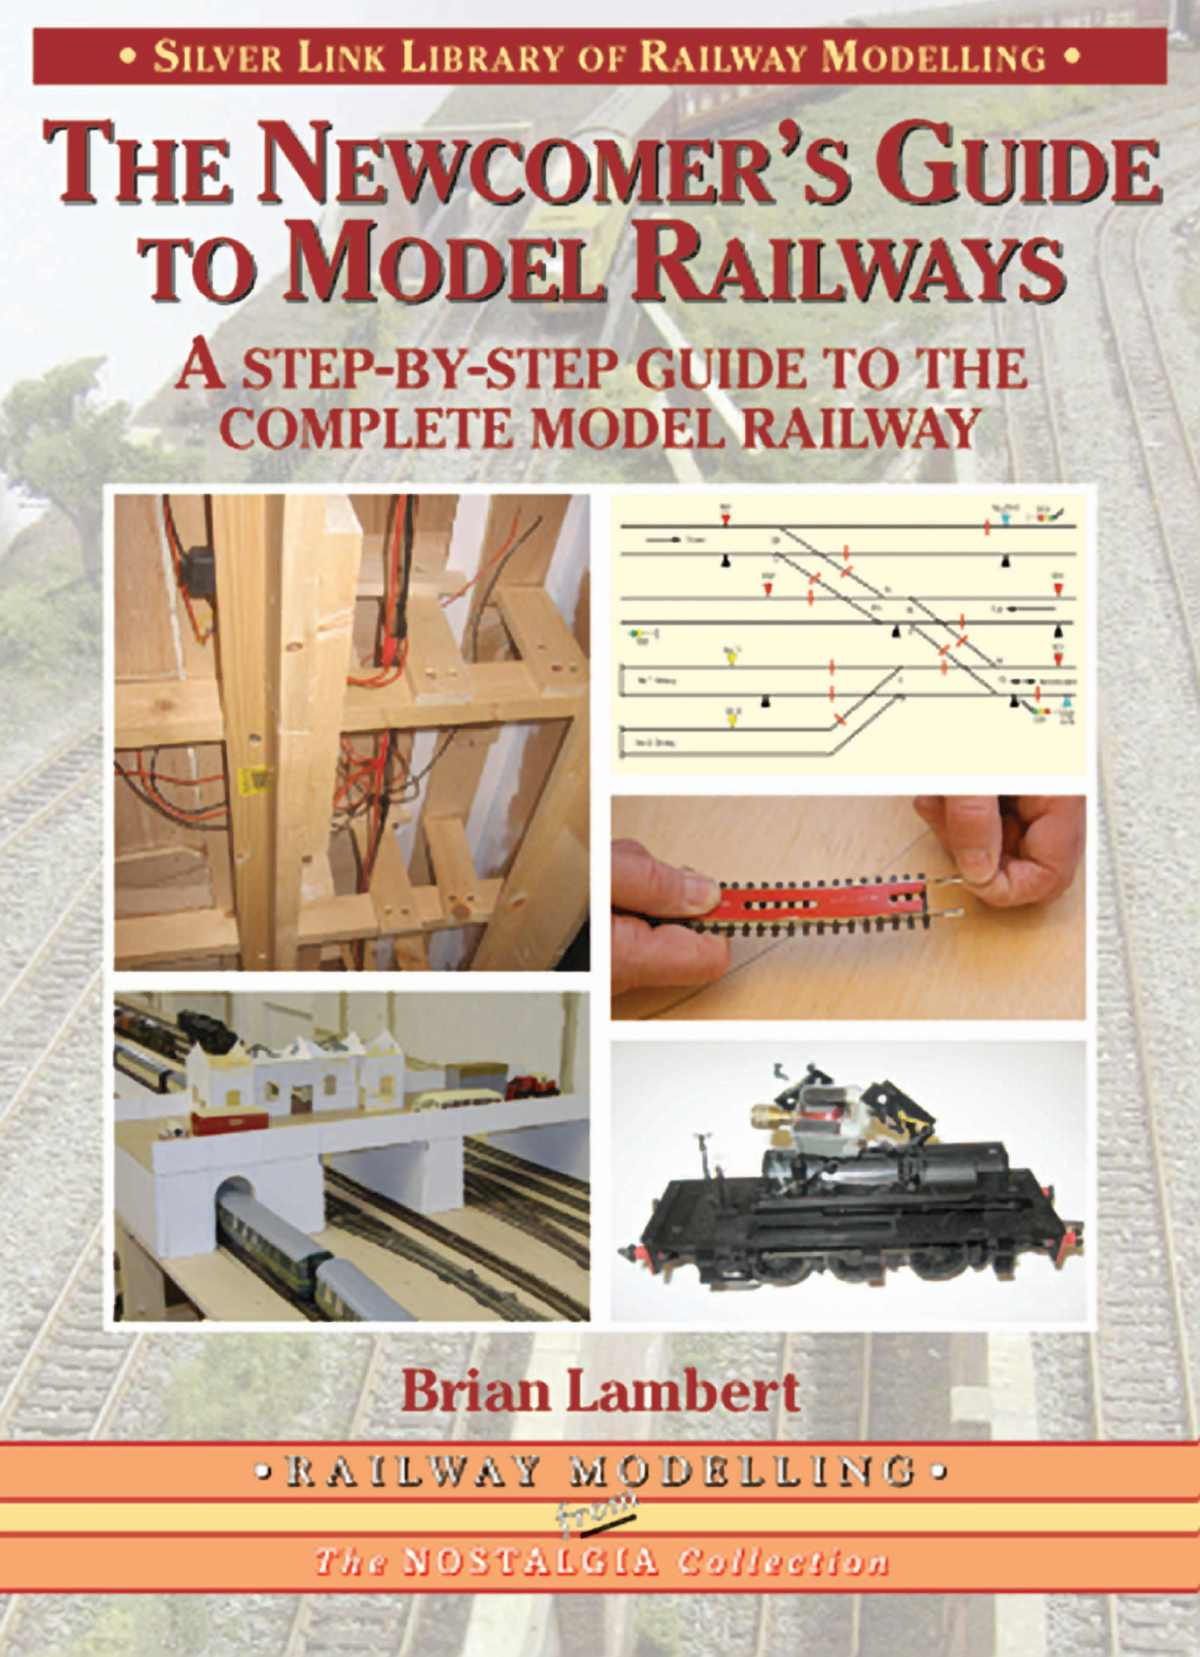 3290 The Newcomer's Guide to Model Railways